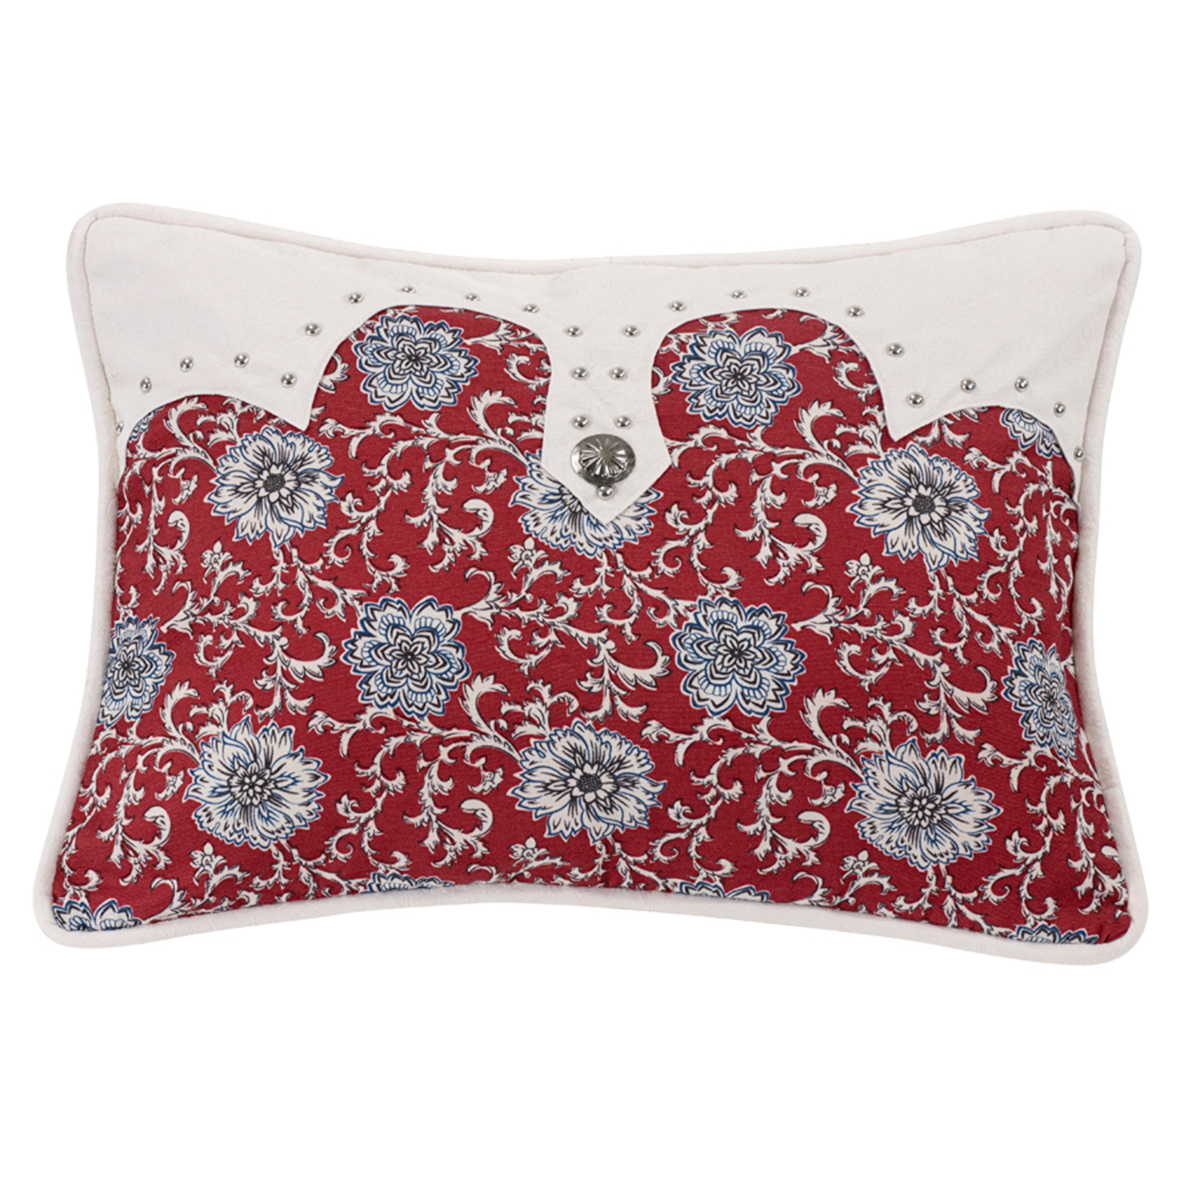 WS4011P5  Bandera Oblong Floral Pillow